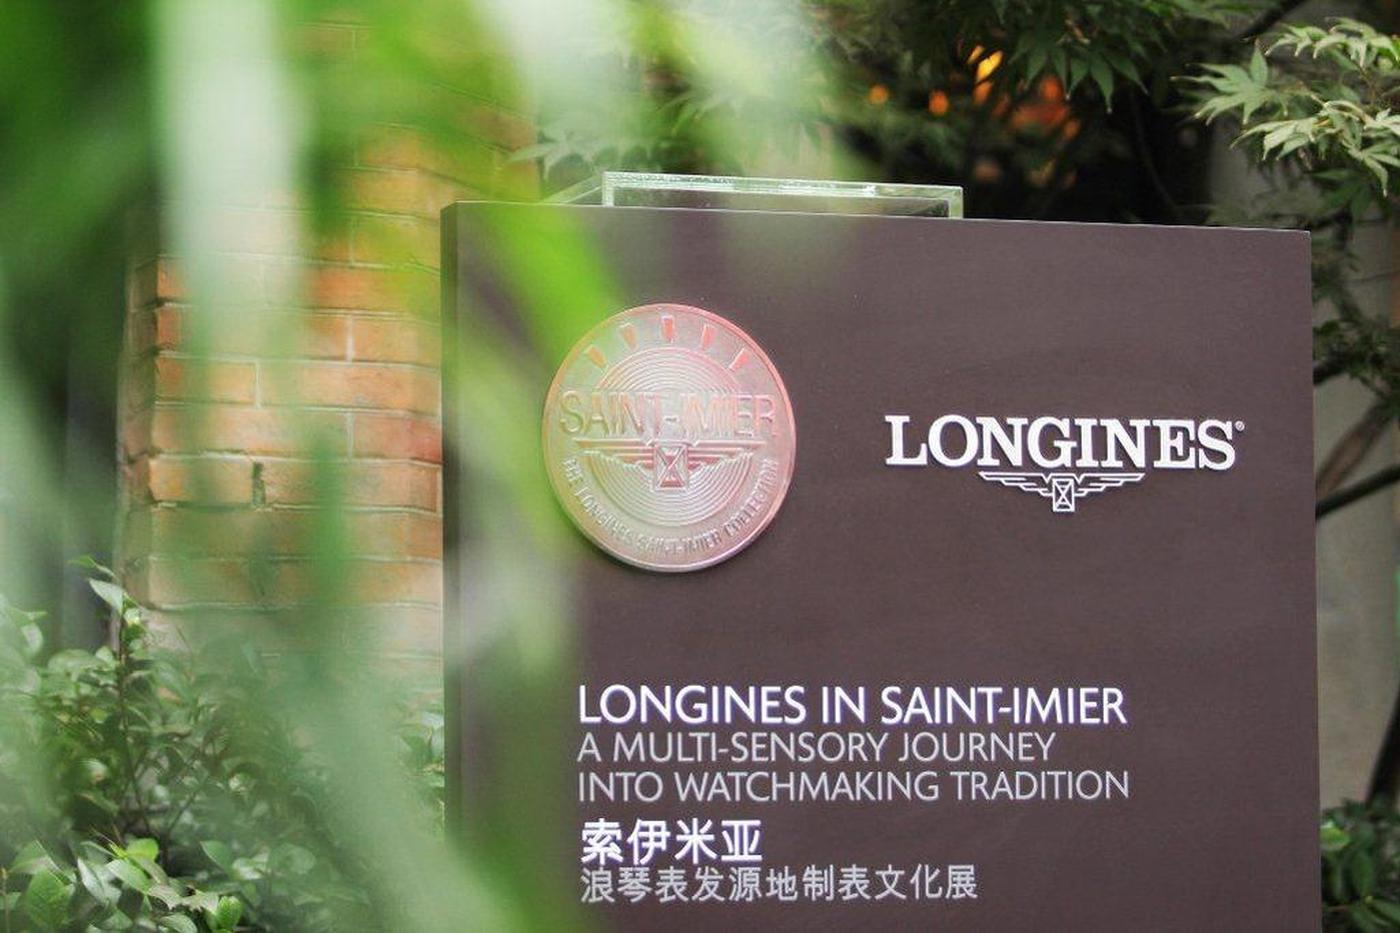 Longines Corporate Event: Kate Winslet reveals the new Longines Saint-Imier Collection in Shanghai 10